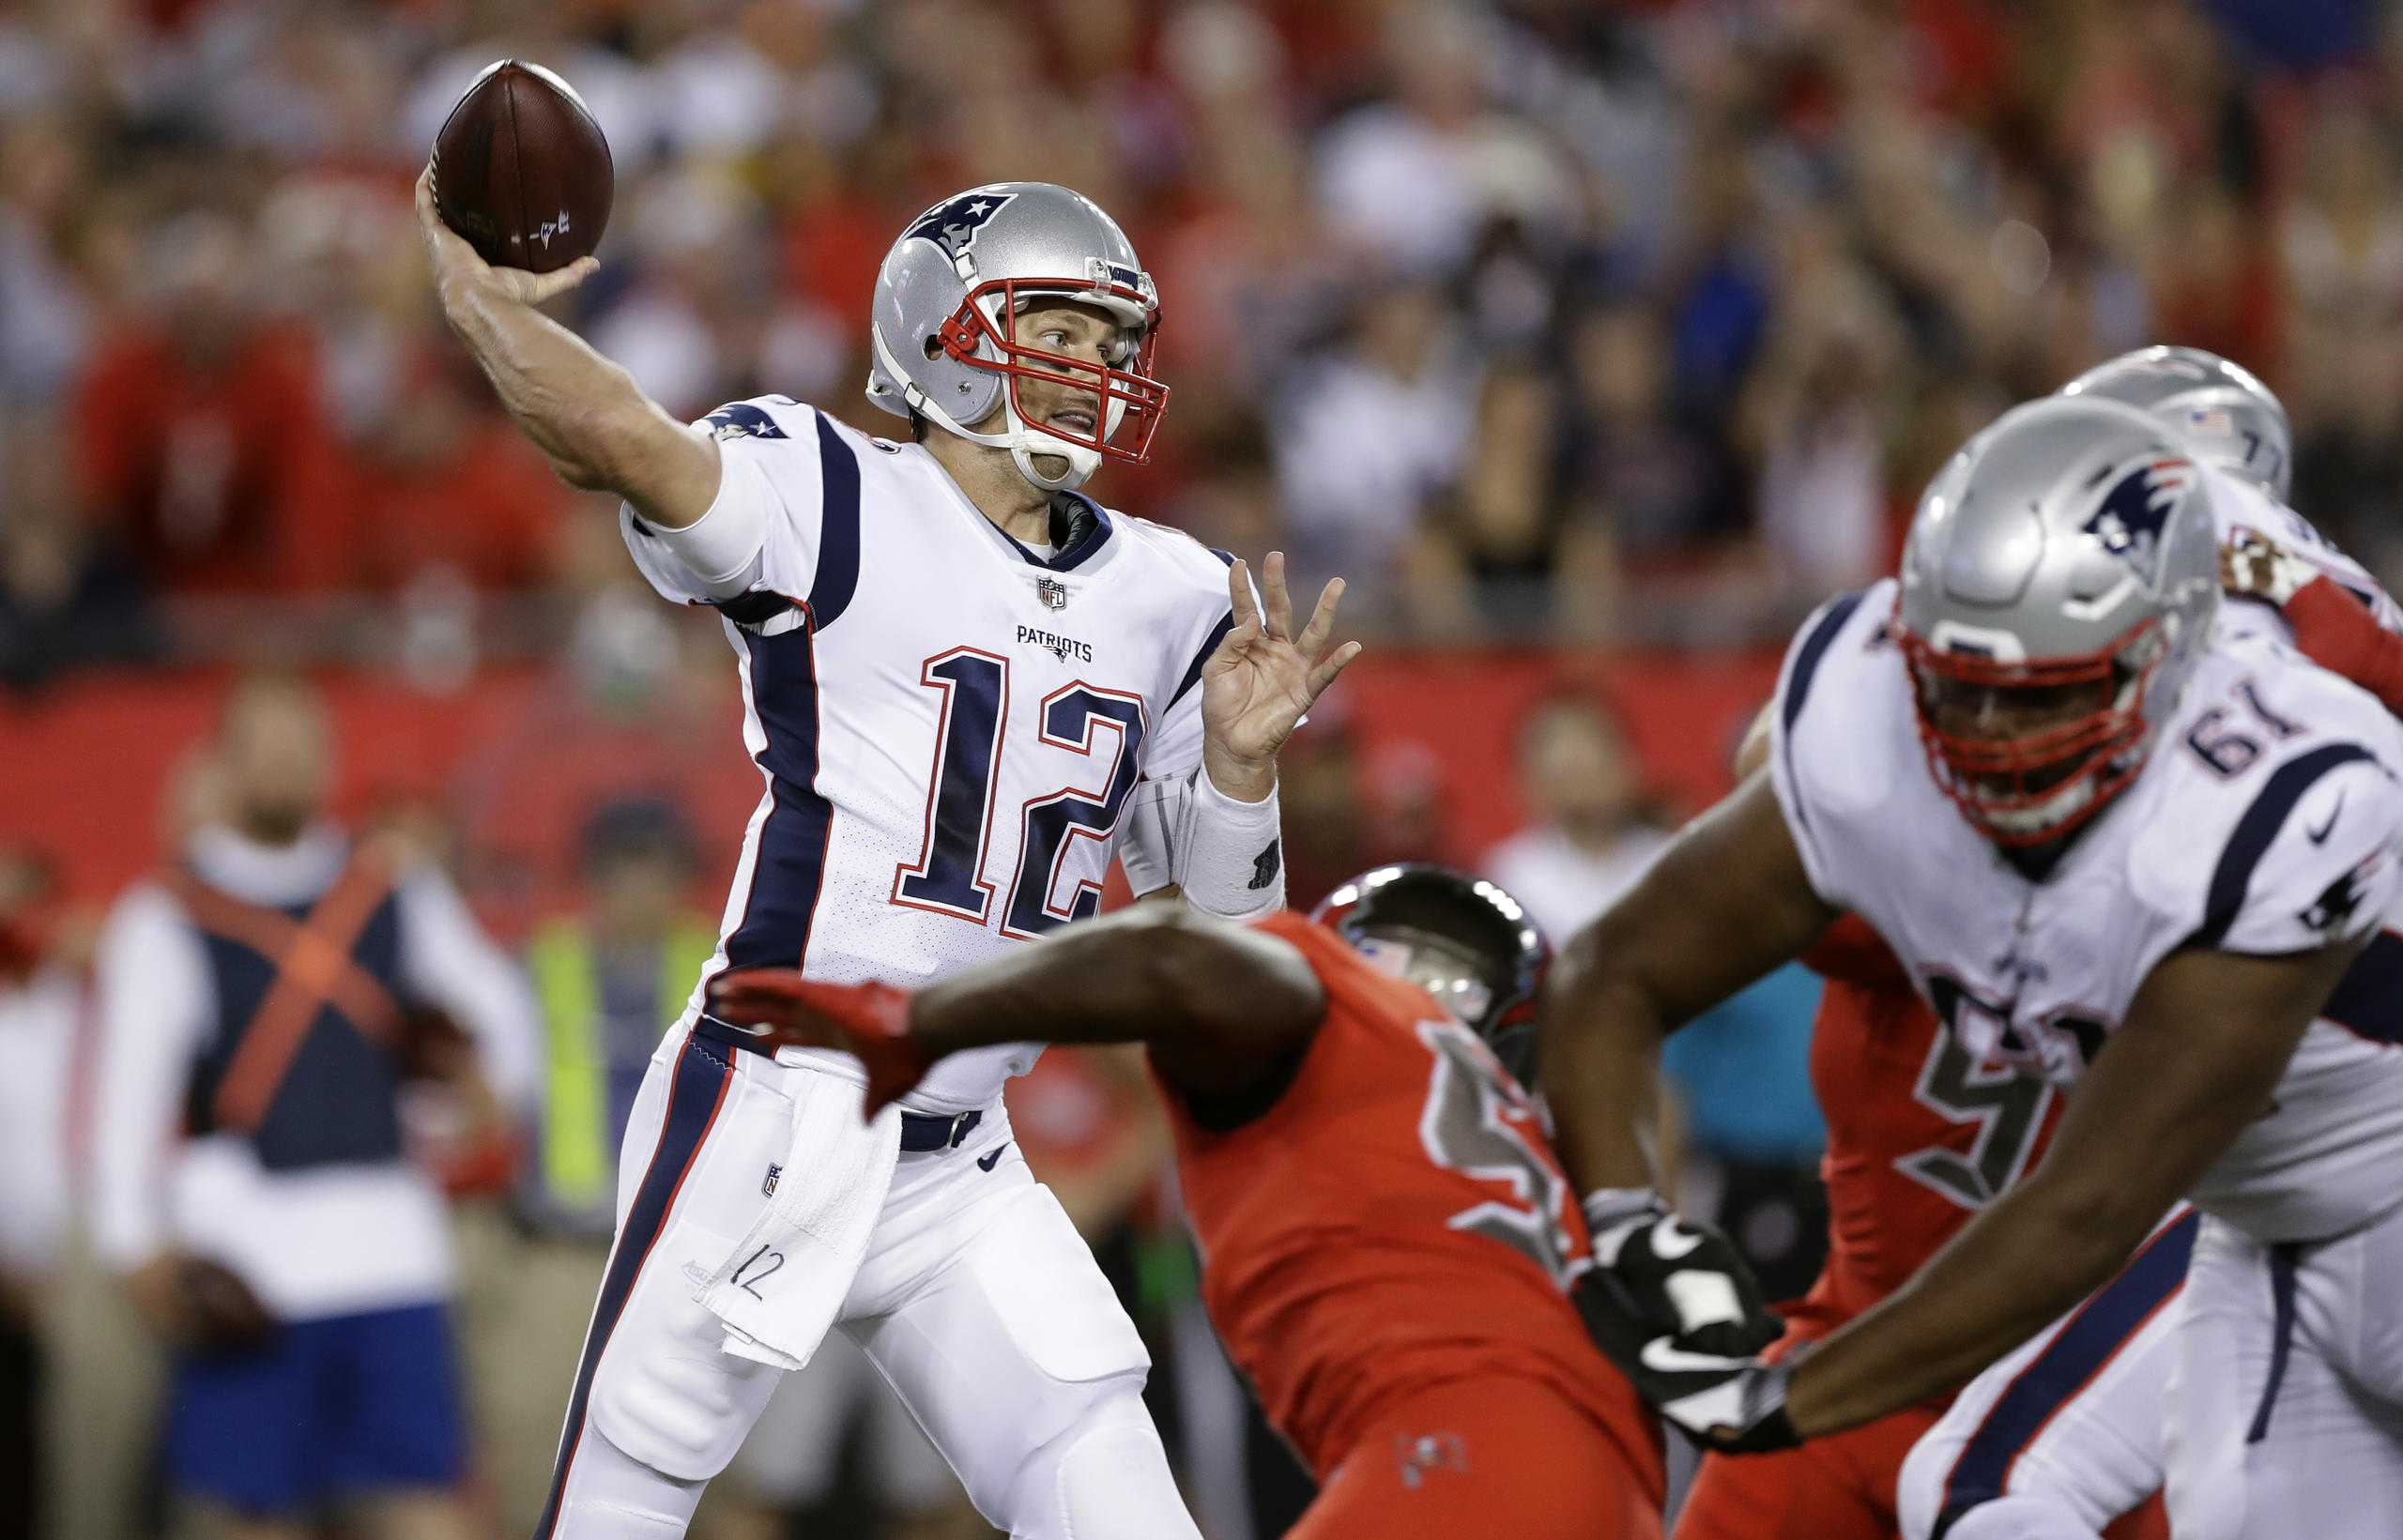 Patriots' Tom Brady battling shoulder injury, report says